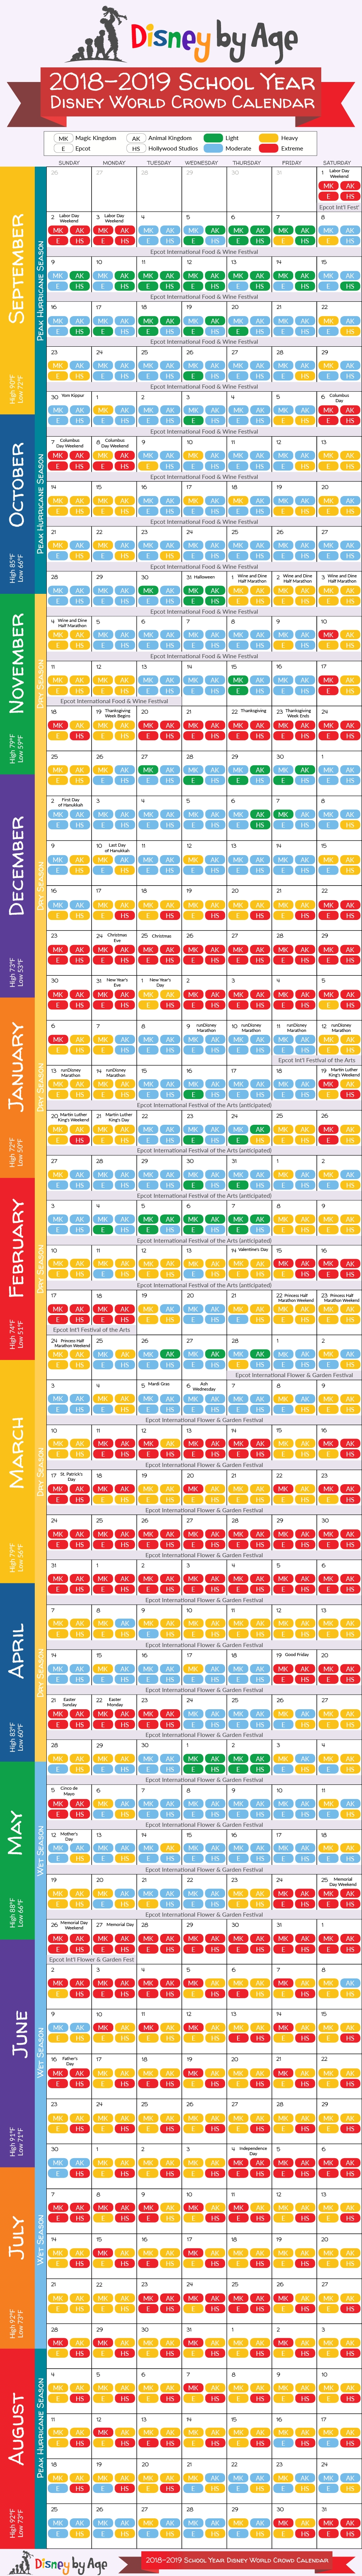 Disney World Crowd Calendar 2018 And 2019-January 2020 Wdw Crowd Calendar